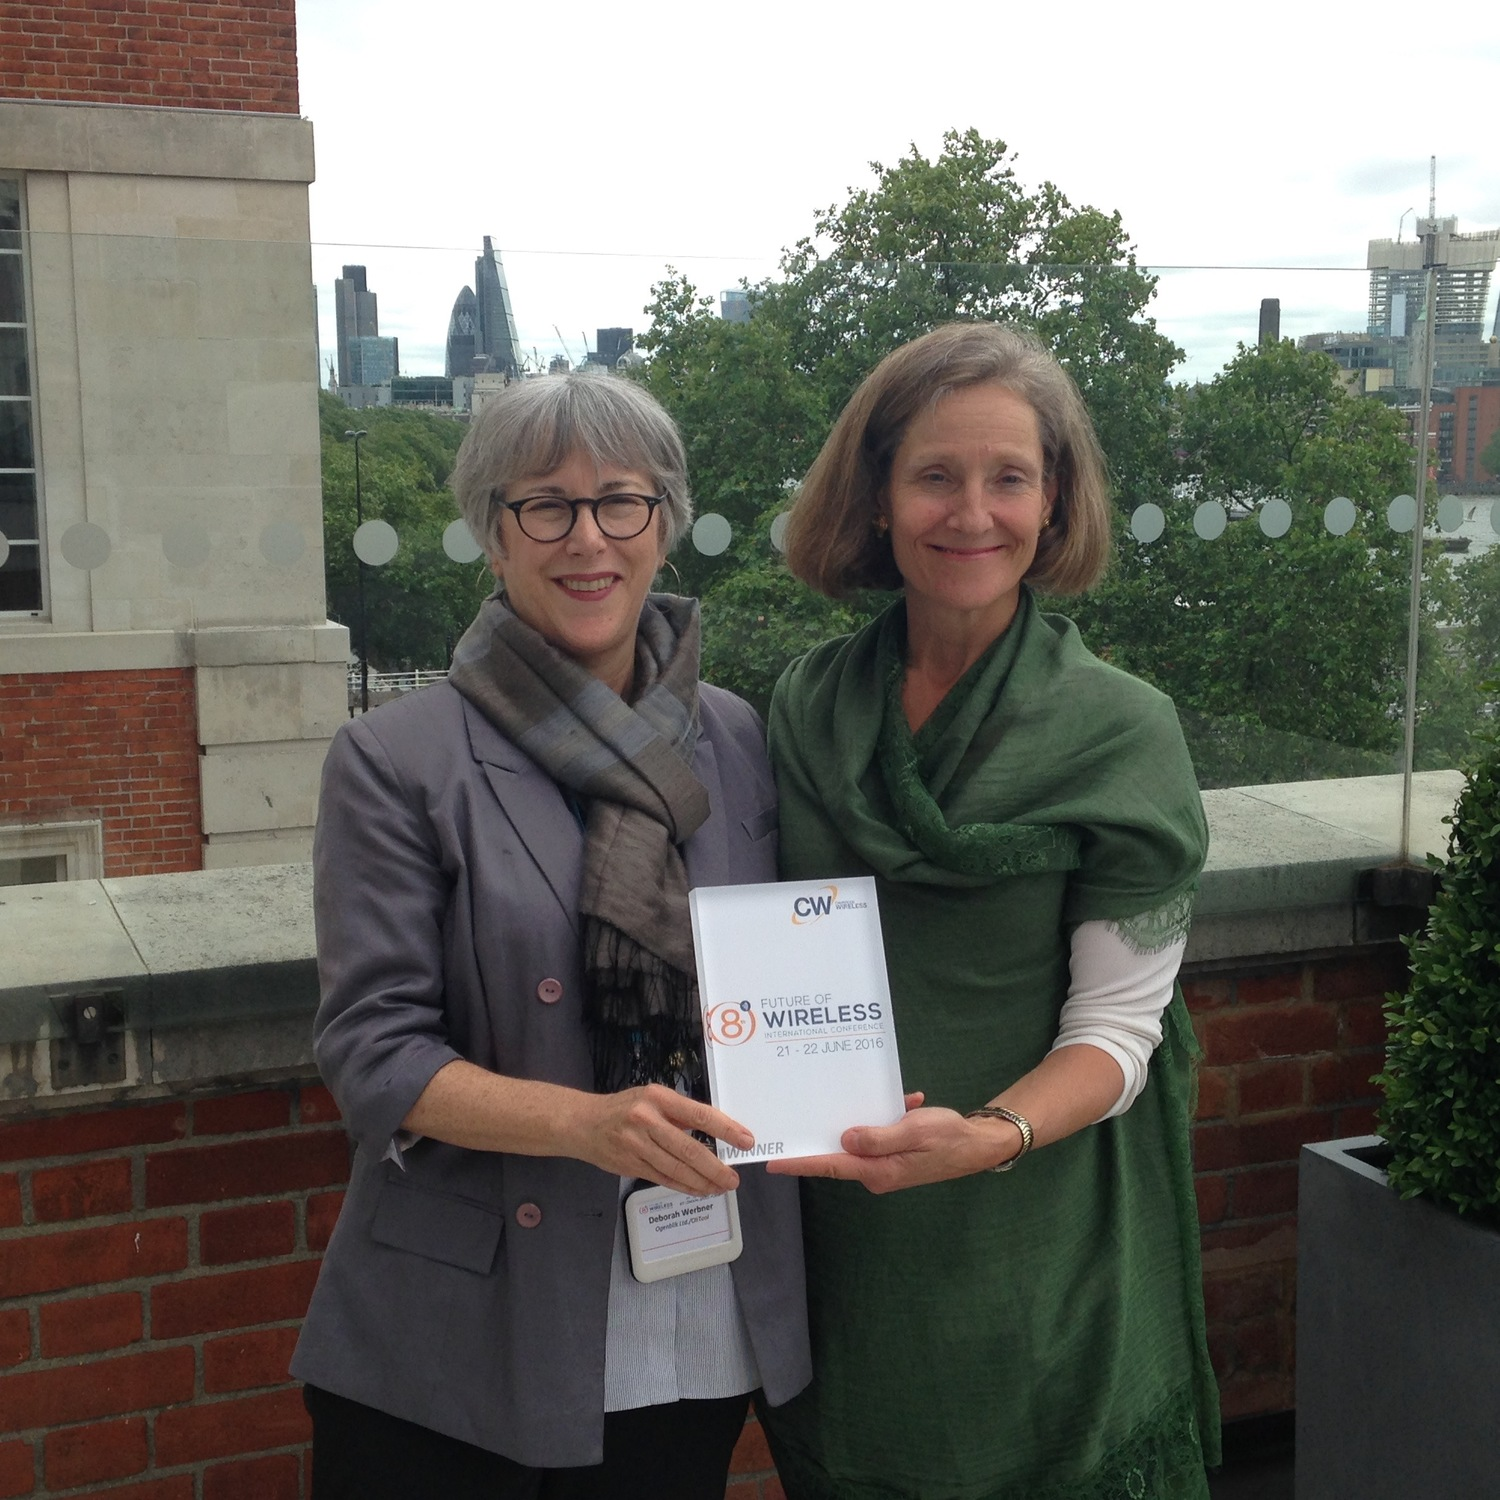 Deborah and Lisa with their award at Cambridge Innovation Showcase June 22 2016